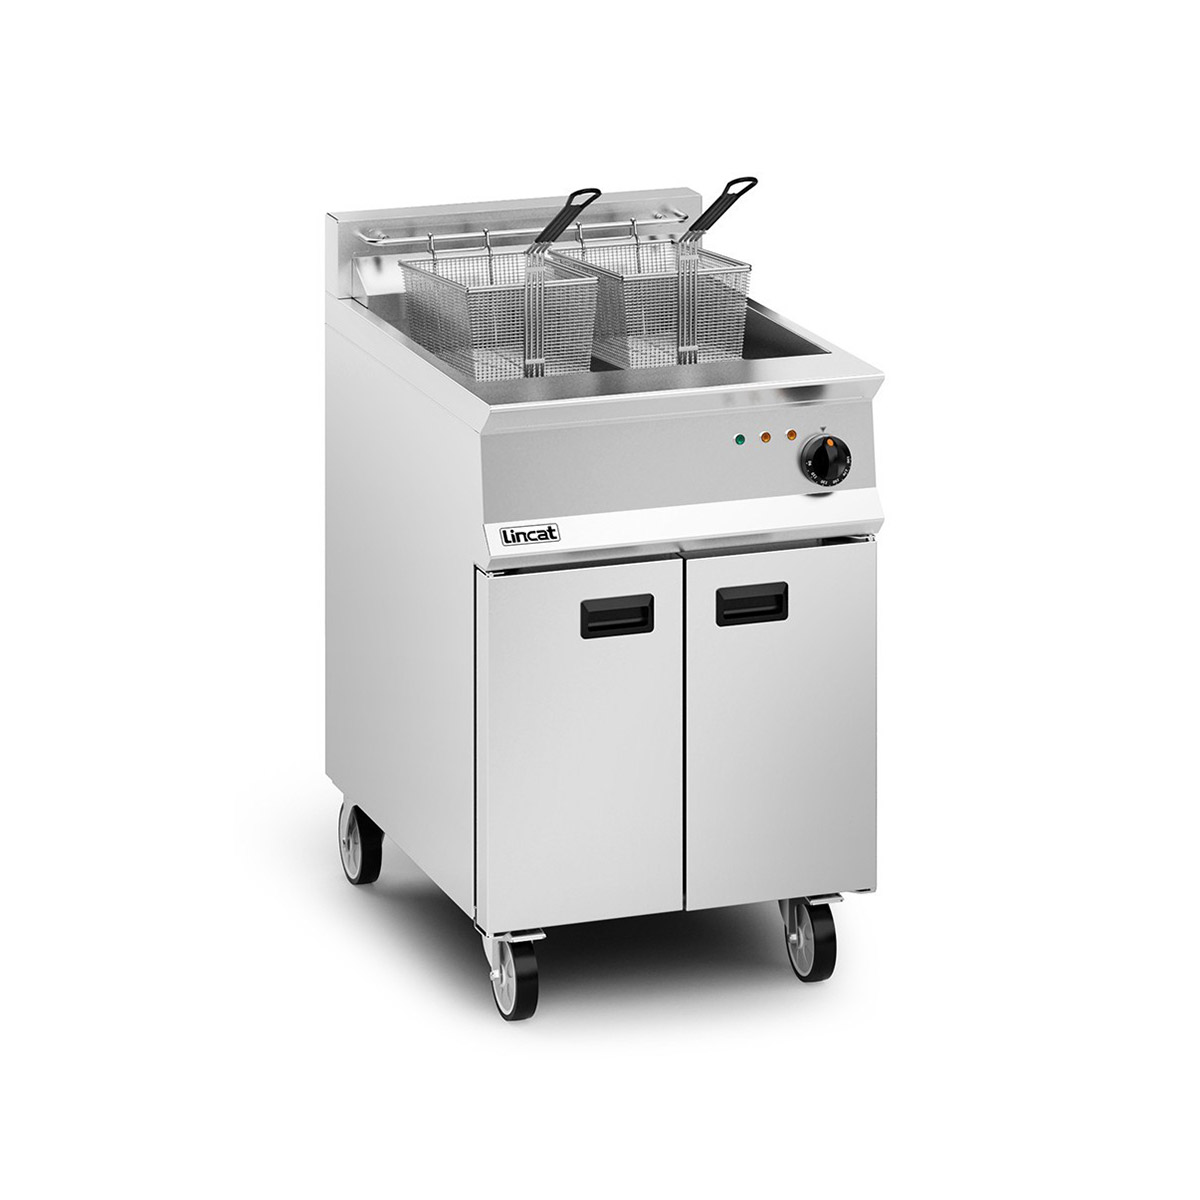 Lincat Opus 800 Electric Fryer Model: OE8108